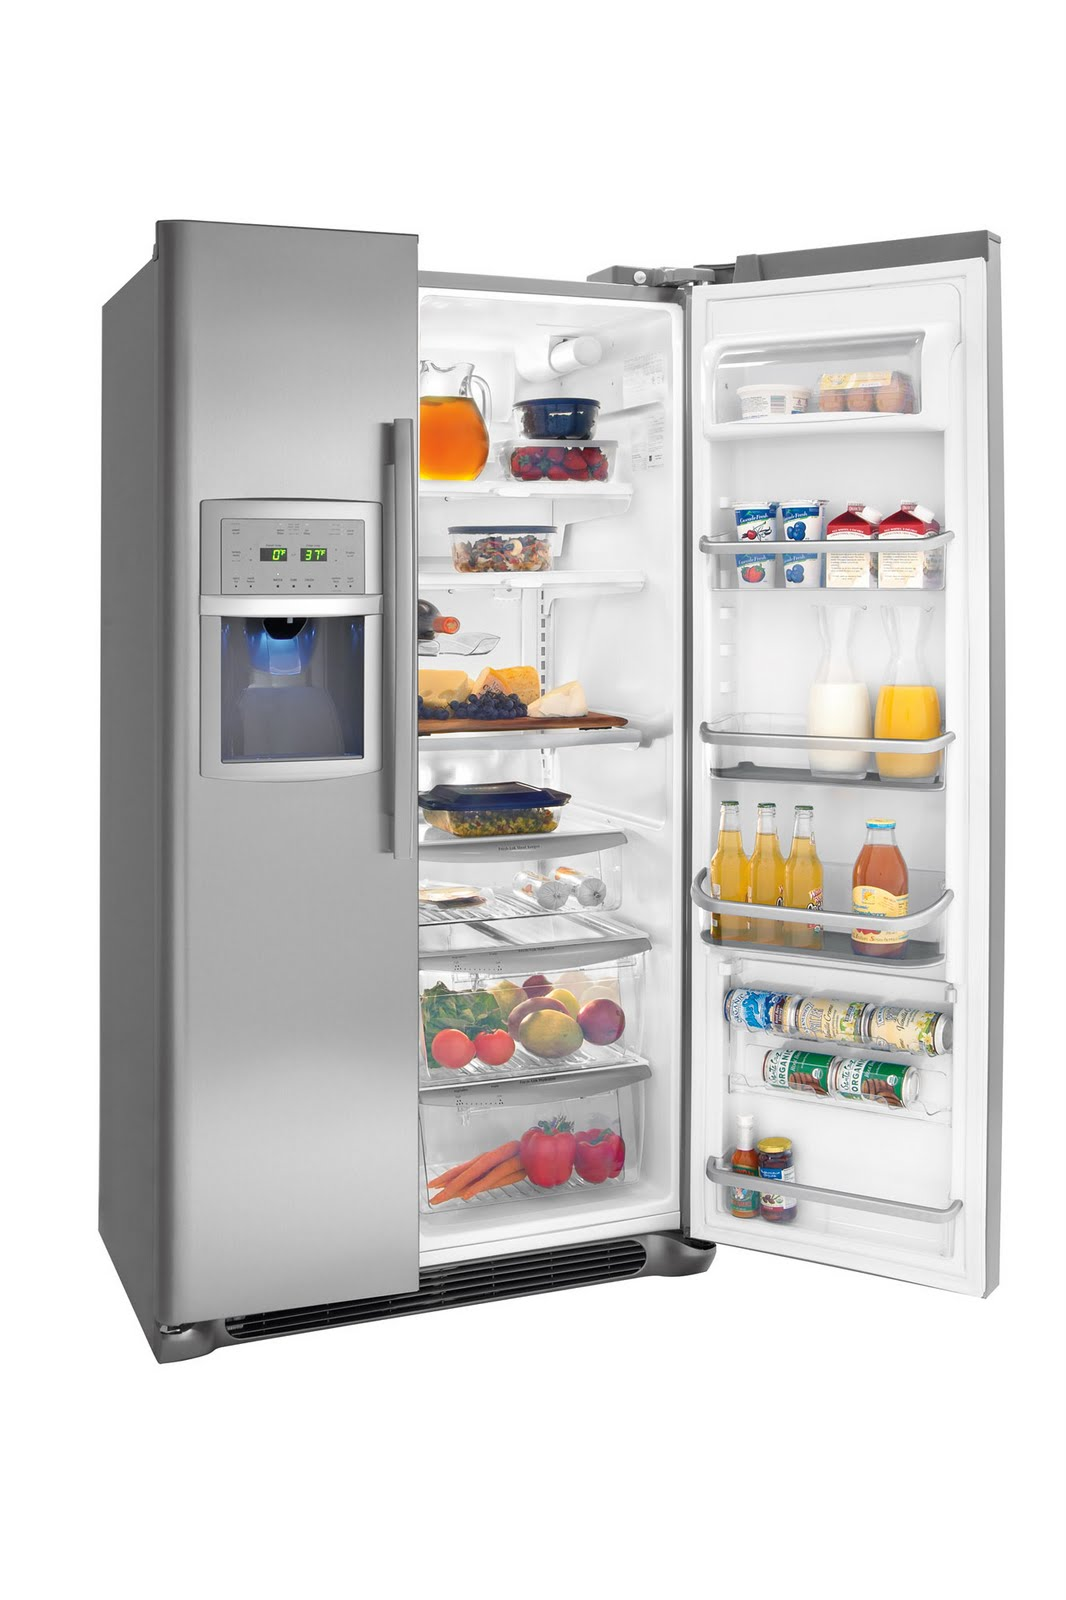 Frigidaire Side By Side Counter Depth Refrigerator skepseissss: Determining Top 10 Refrigerators: Whirlpool ...